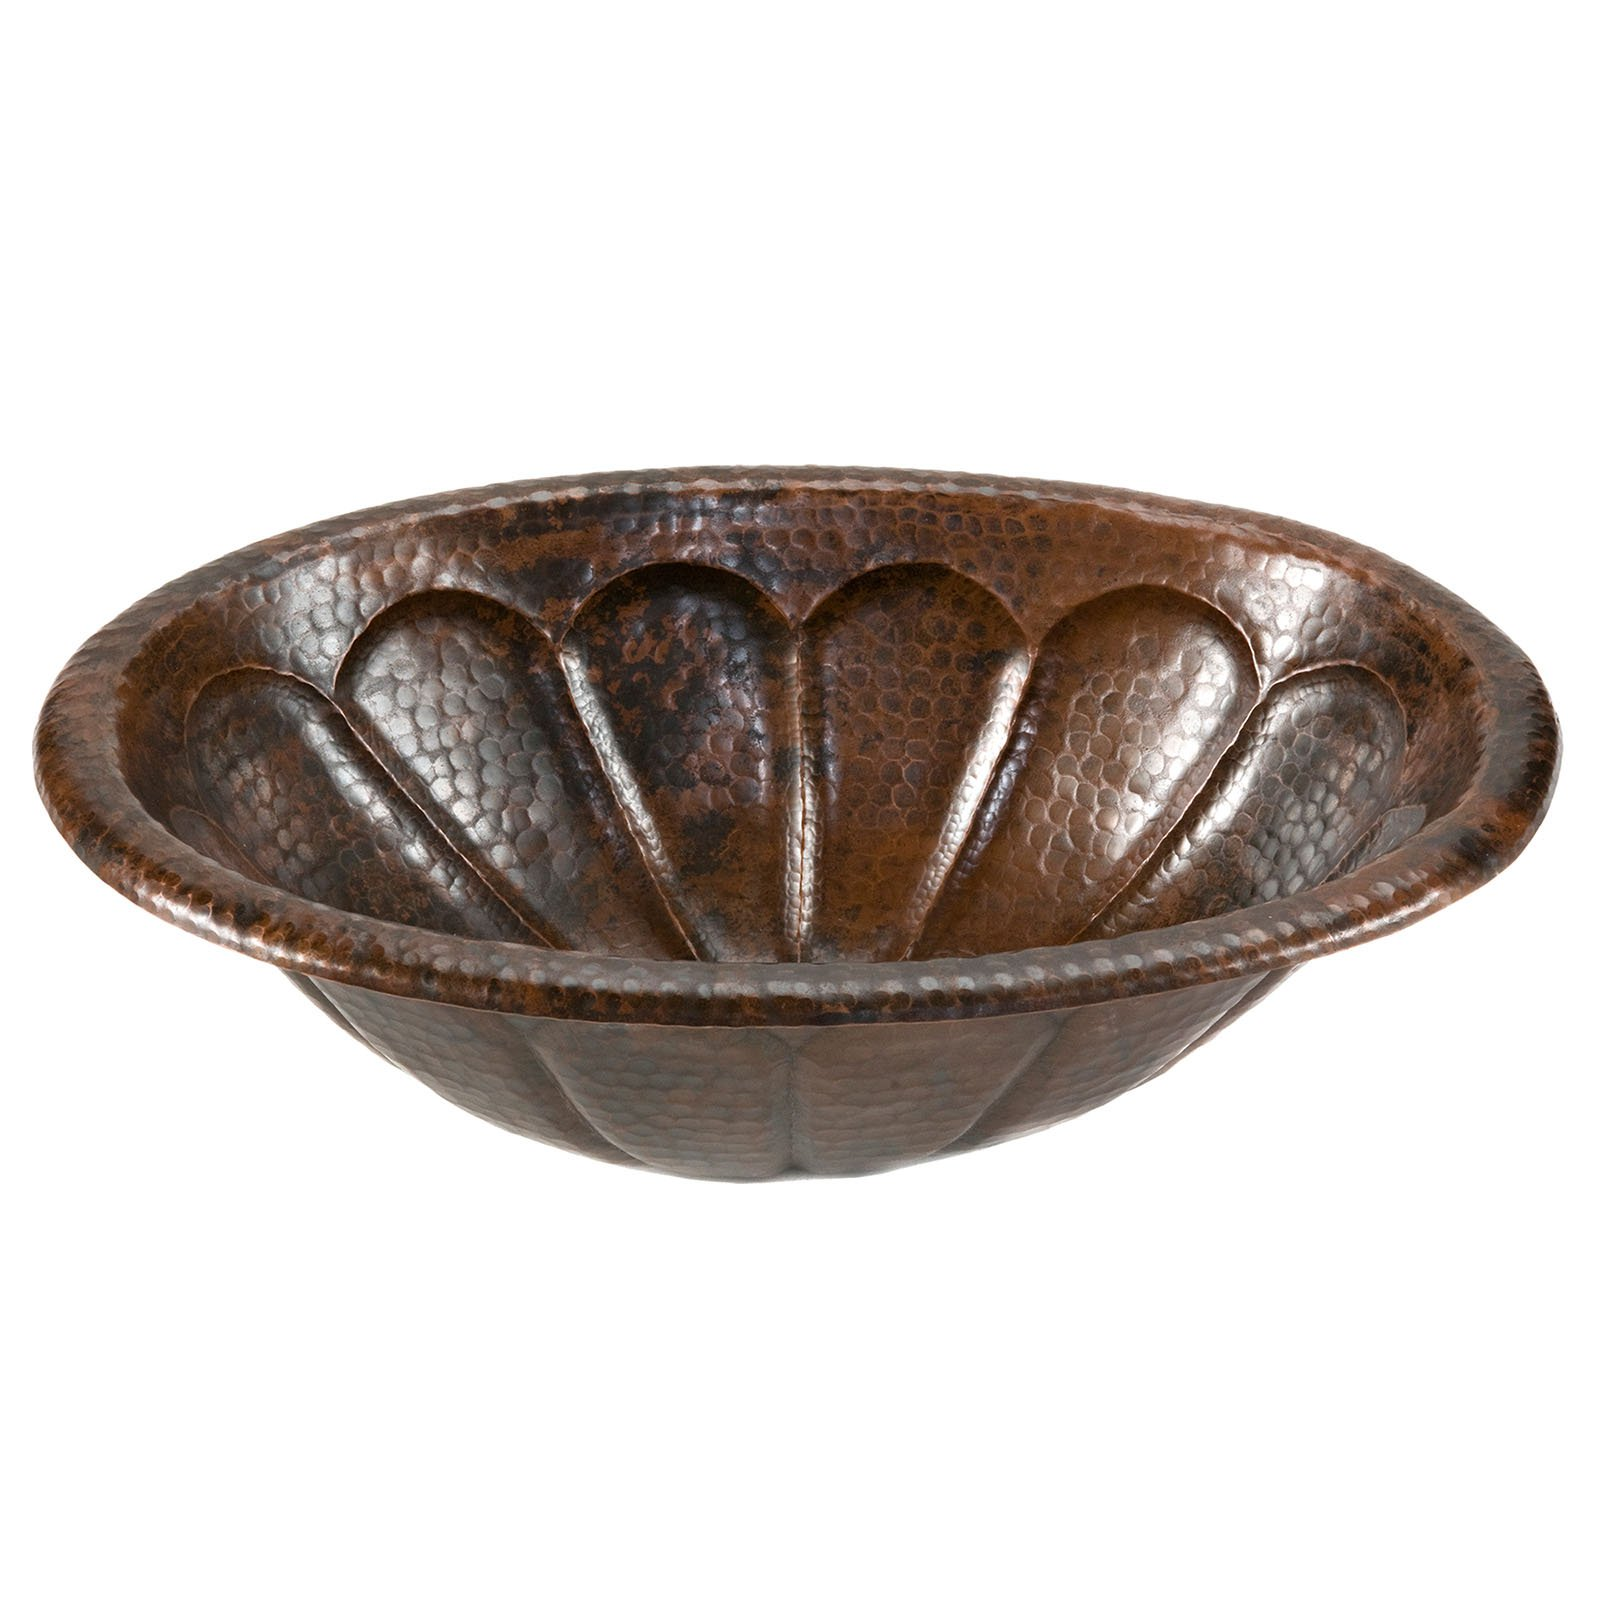 Premier Copper Products LO19RSBDB Oval Sunburst Self Rimming Hammered Copper Sink